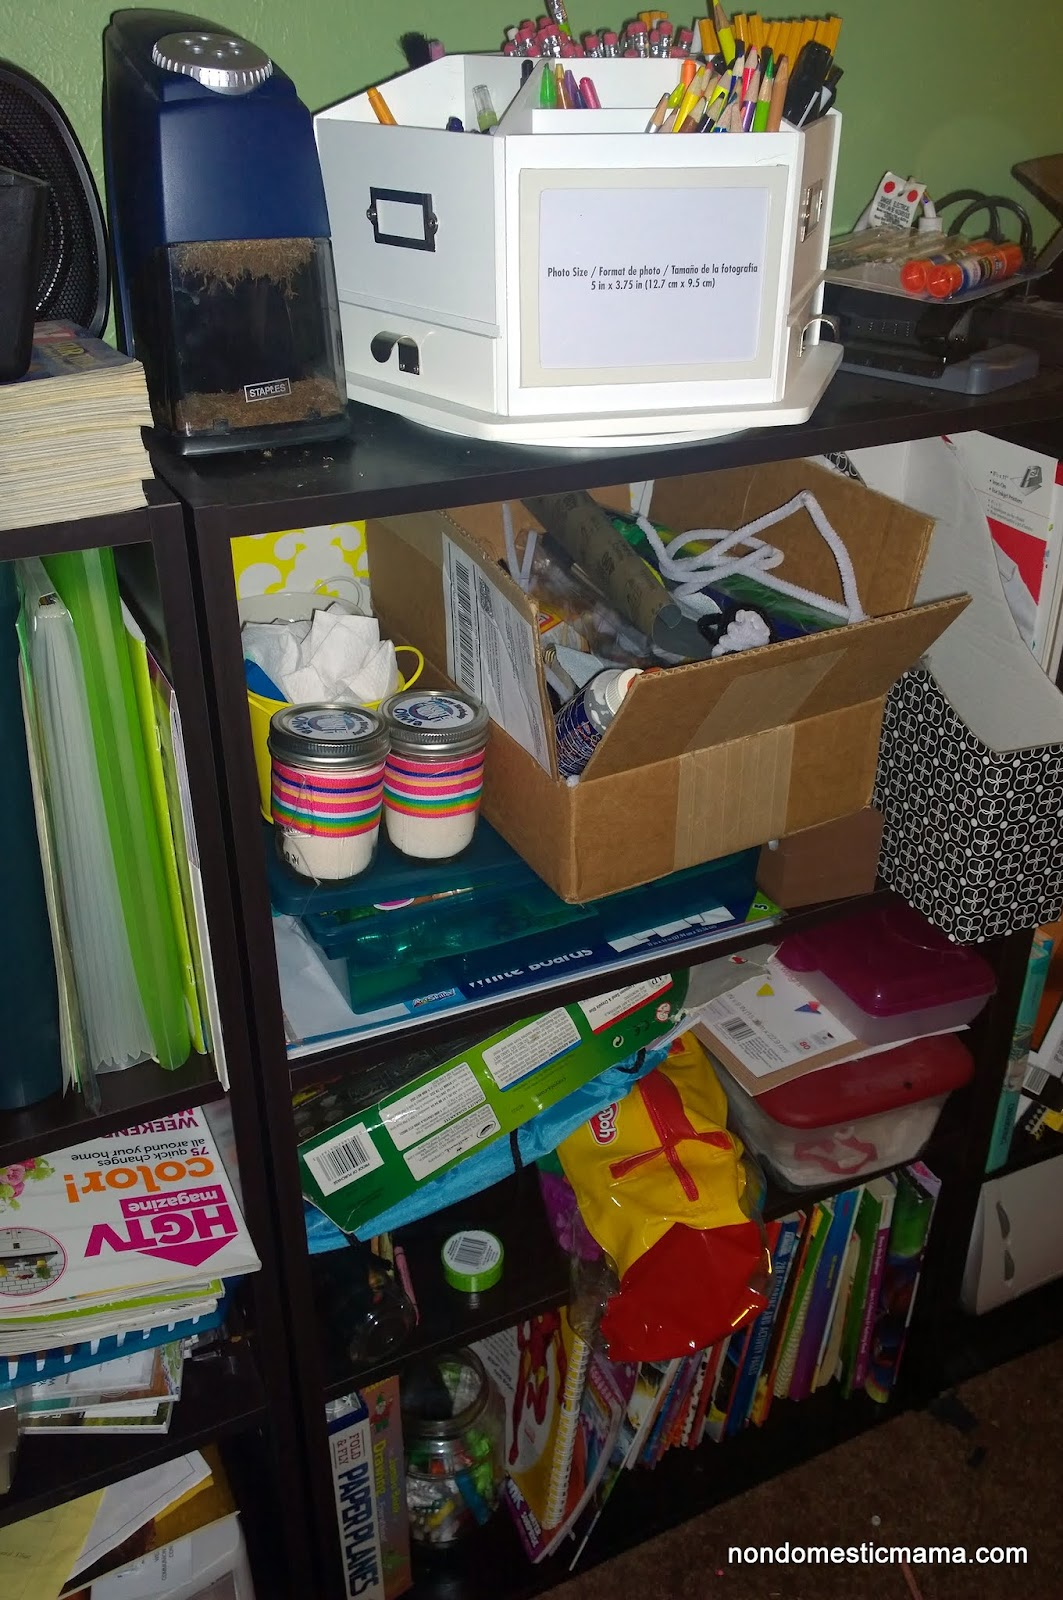 {Day 7} Living Area Bookshelves - 31 Days of De-Hoarding #write31days #dehoarding